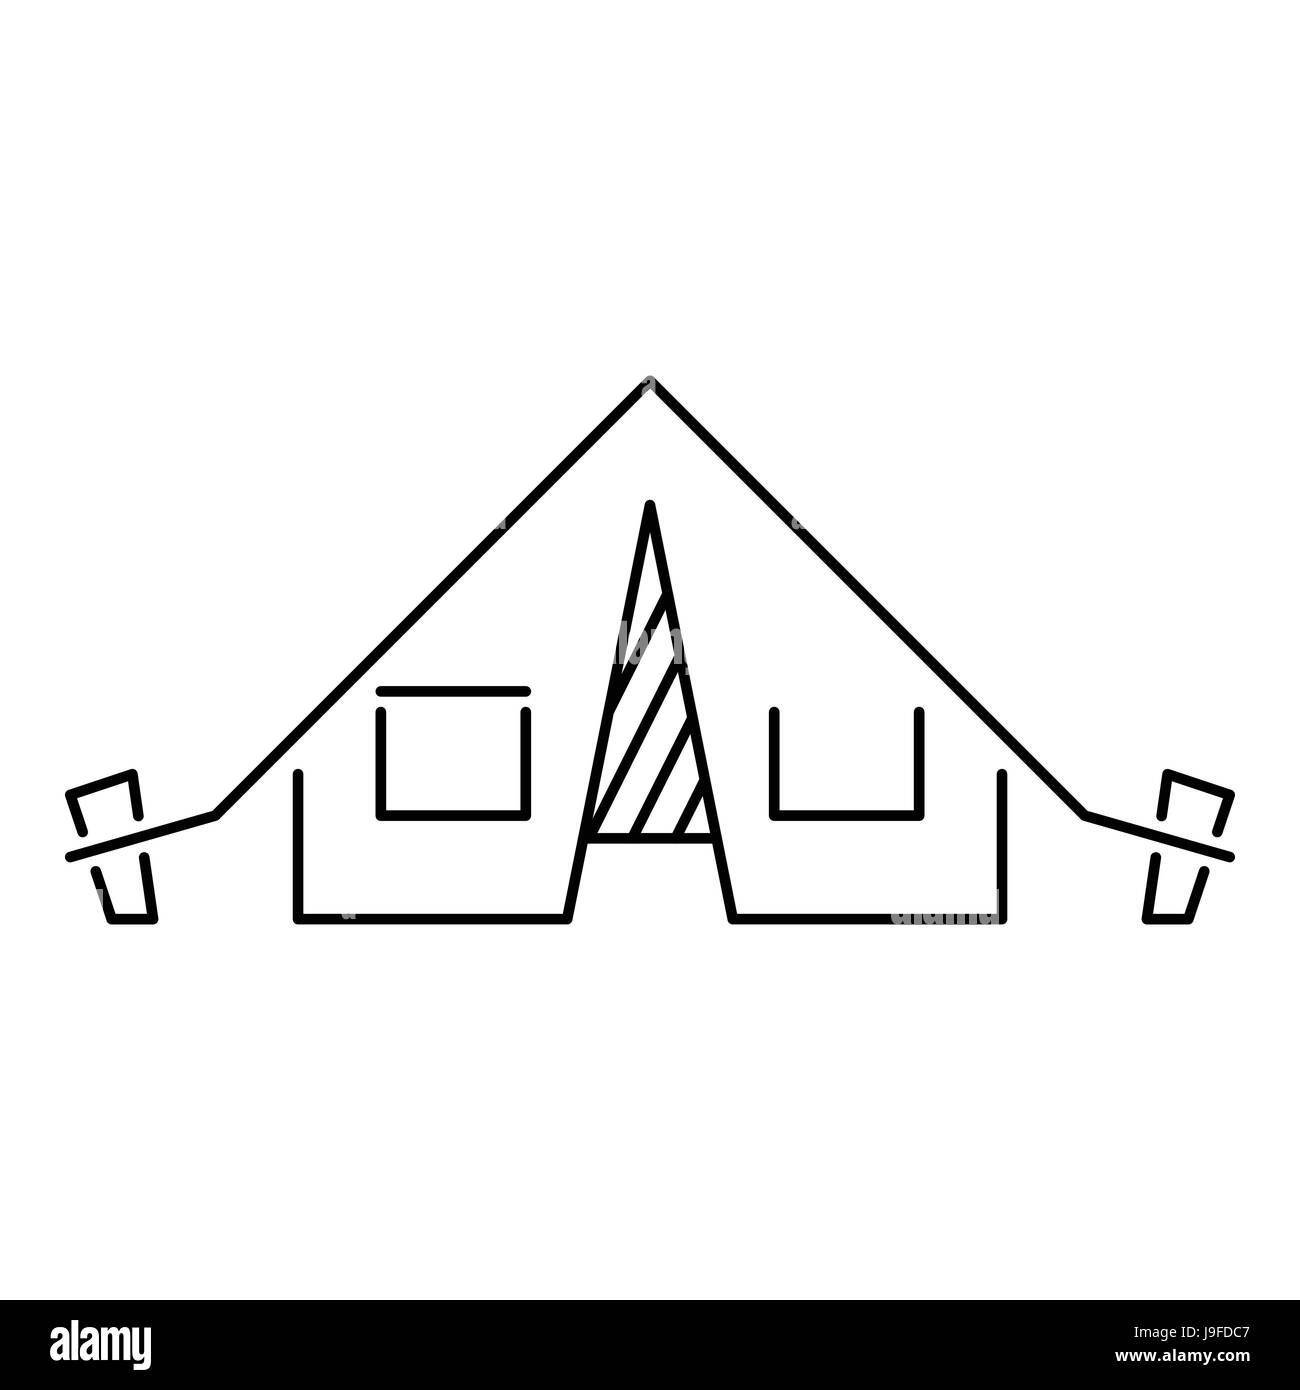 Tent icon outline style  sc 1 st  Alamy & Tent icon outline style Stock Vector Art u0026 Illustration Vector ...